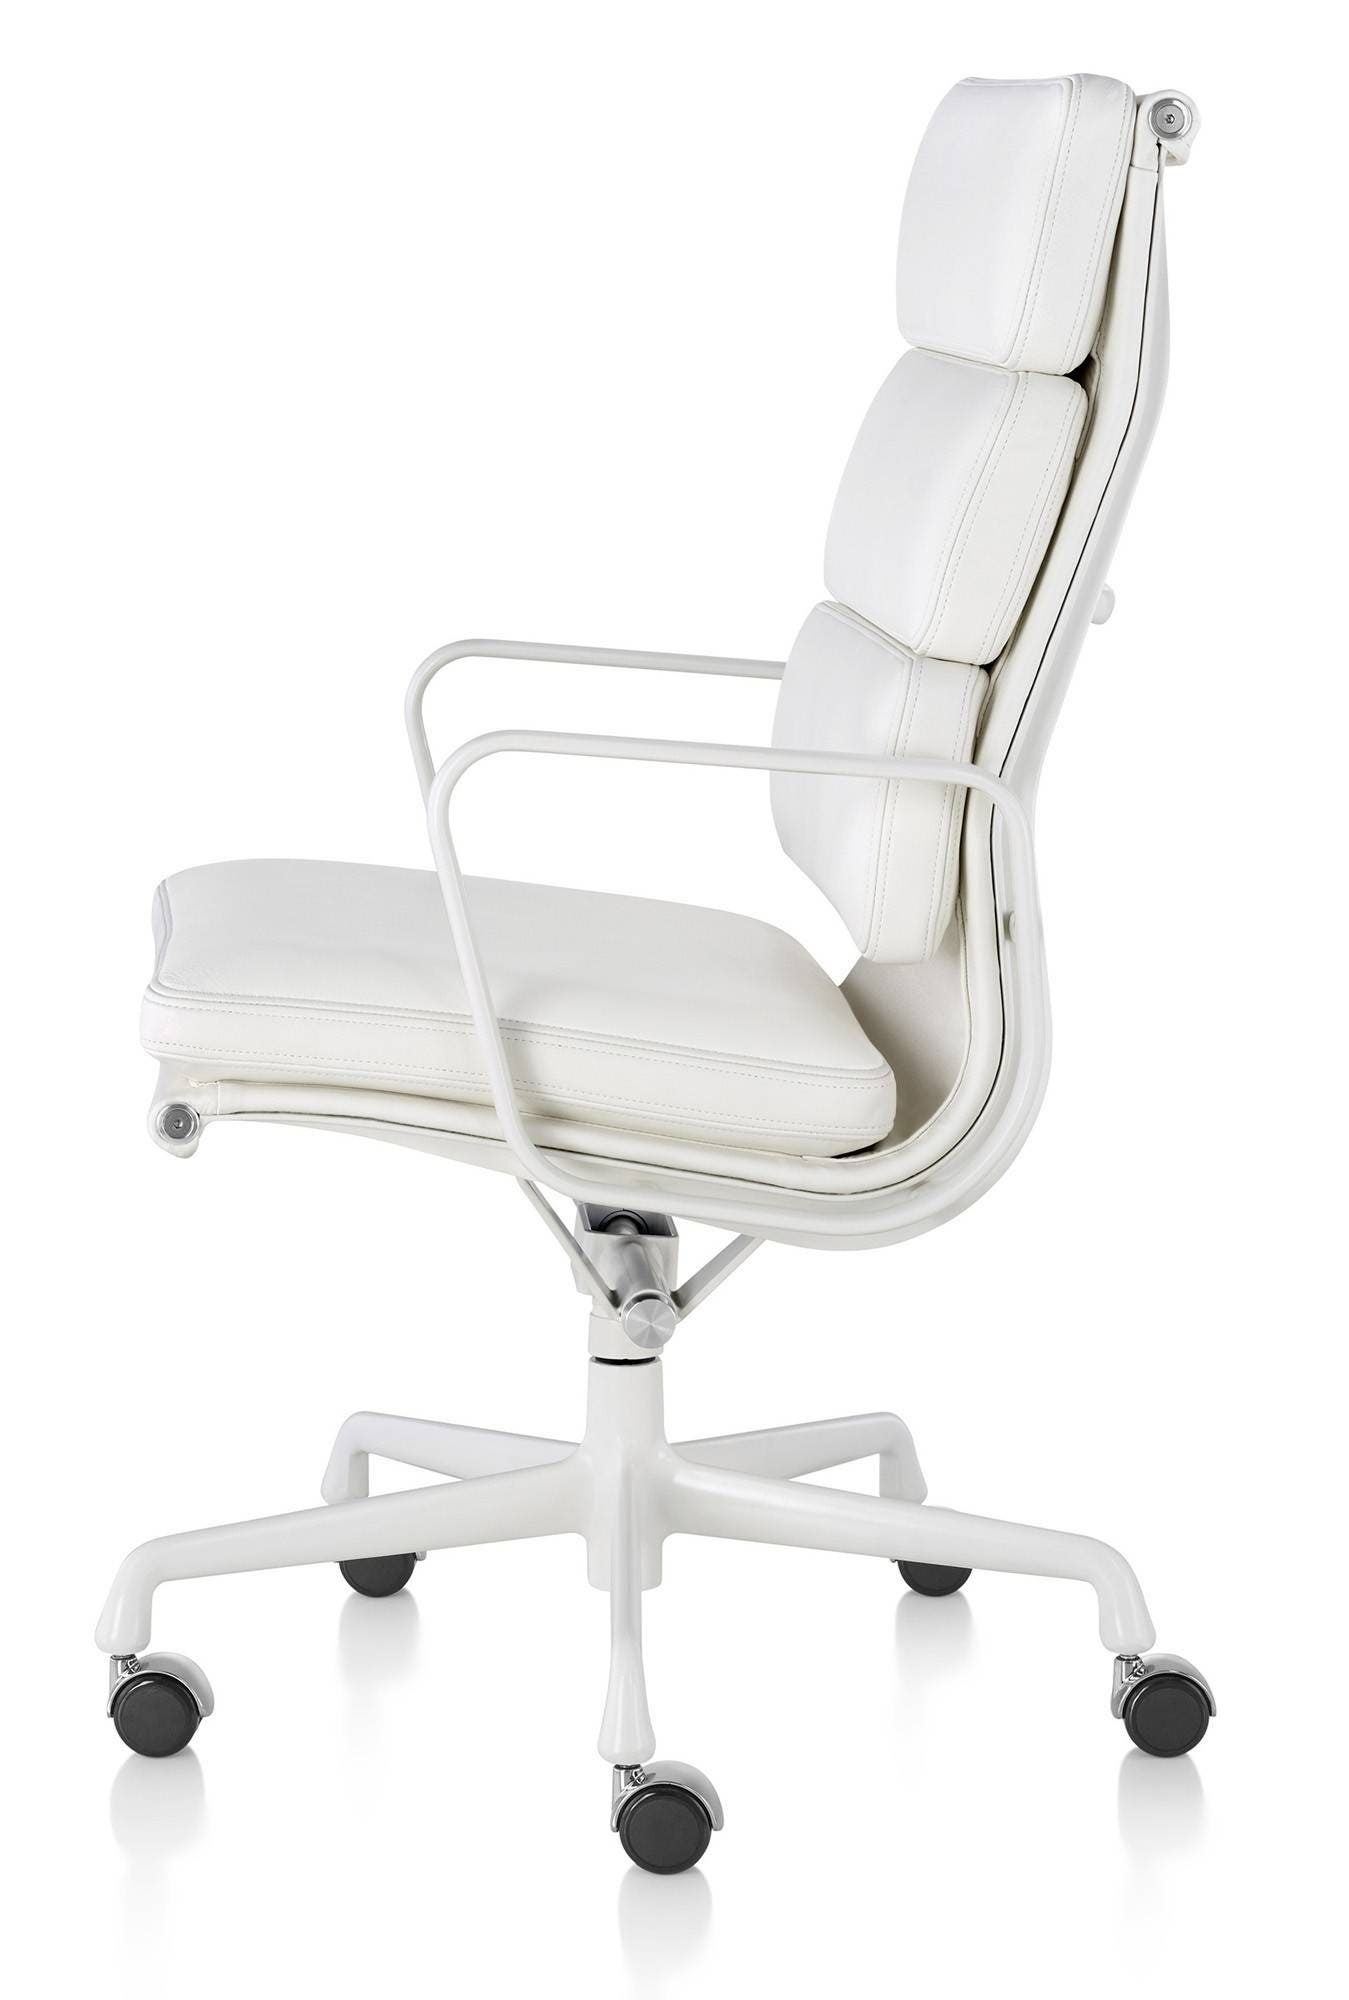 Herman Miller Eames Soft Pad Chair Executive GR